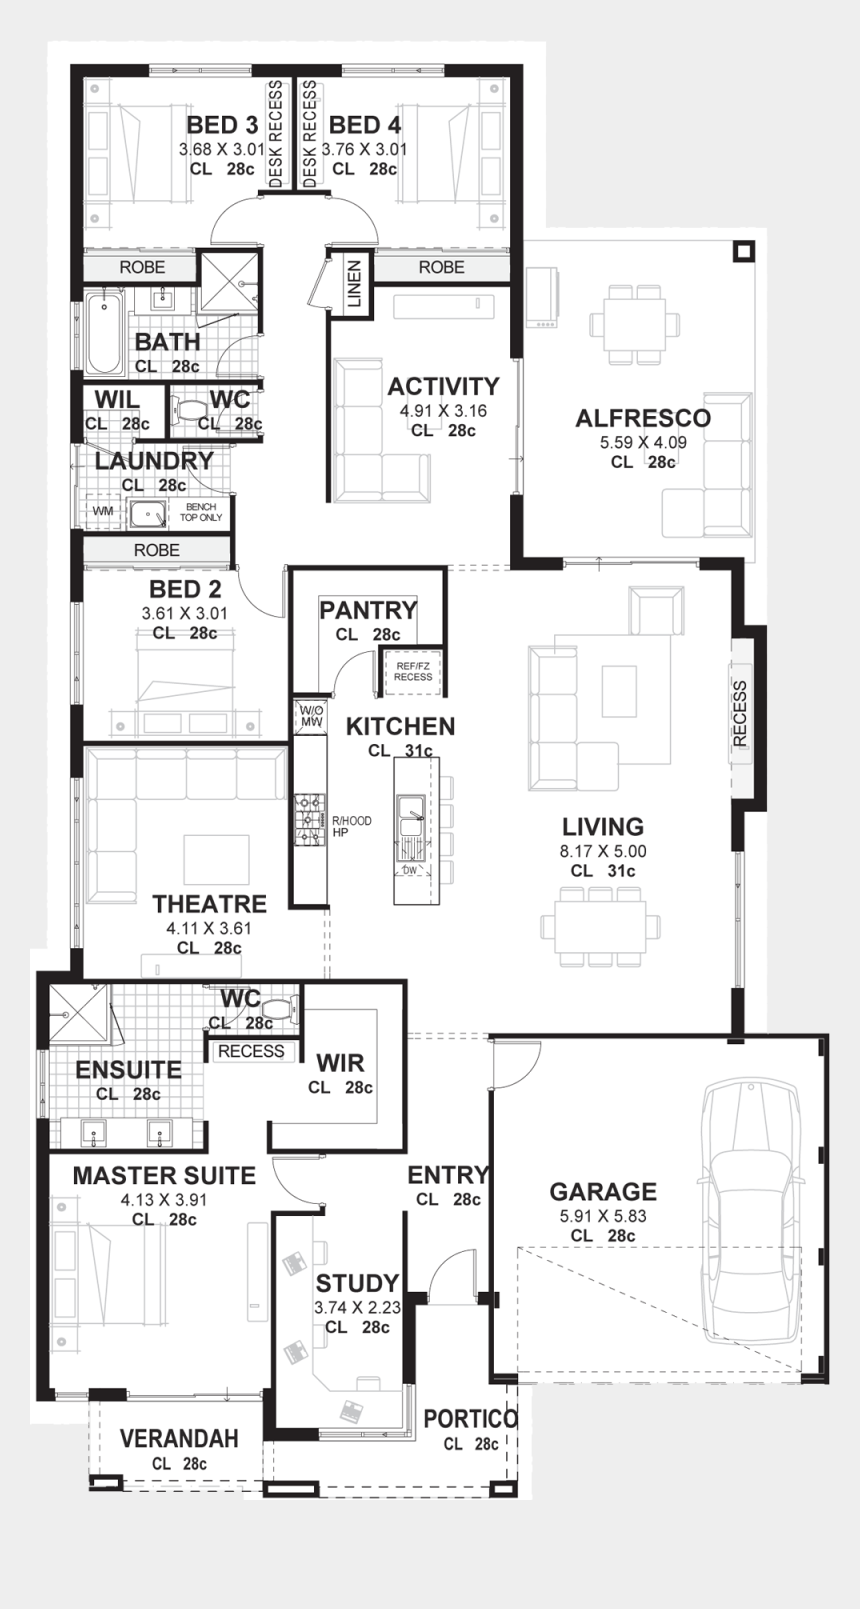 Png Files For Floor Plans Plan For 4 Bedroom House Cliparts Cartoons Jing Fm